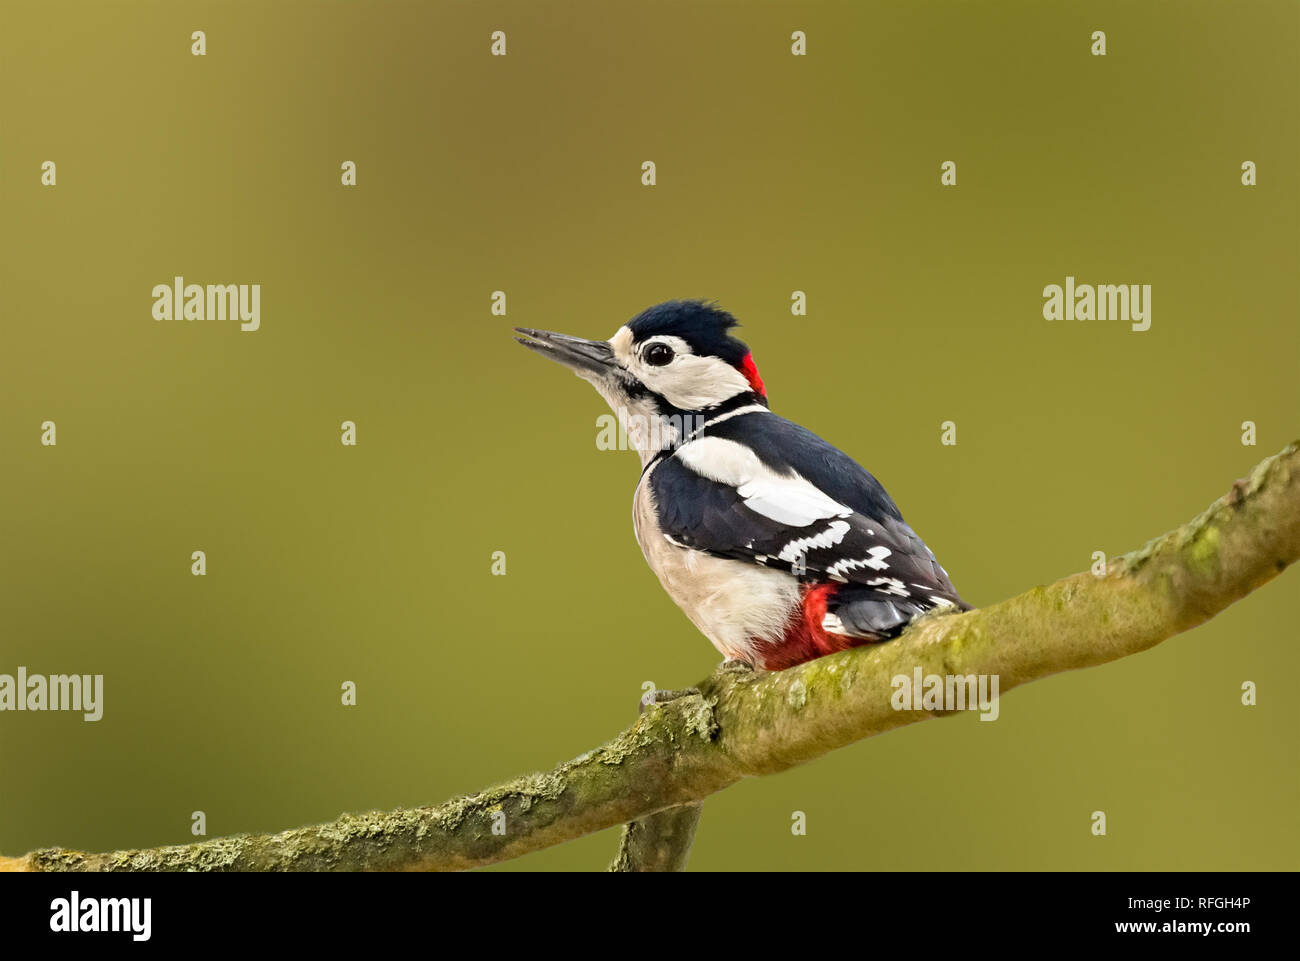 Male Great Spotted Woodpecker (Dendrocopos major) perched on a tree branch in Autumn in Arundel, West Sussex, England, UK. With copy space. Stock Photo